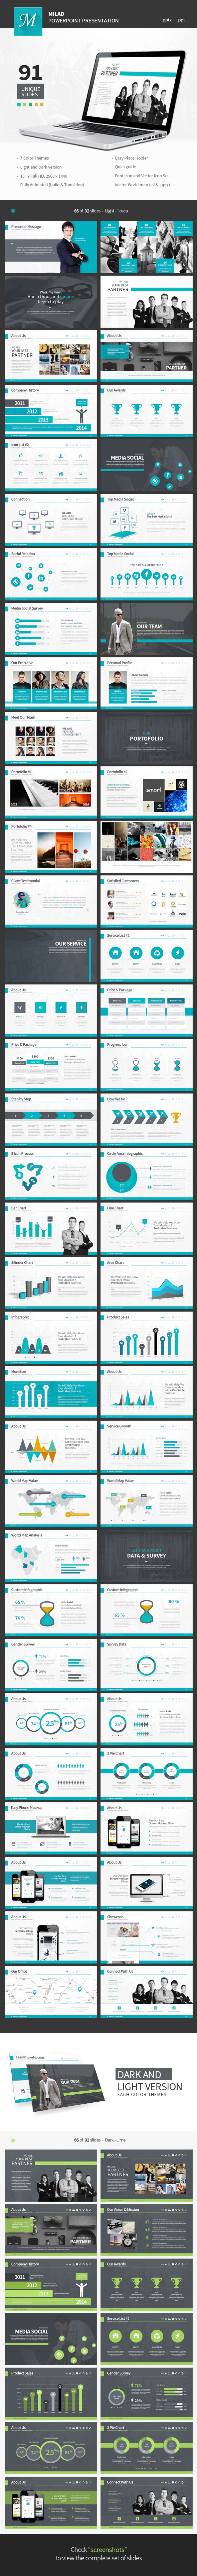 GraphicRiver Milad Powerpoint Presentation 9932274